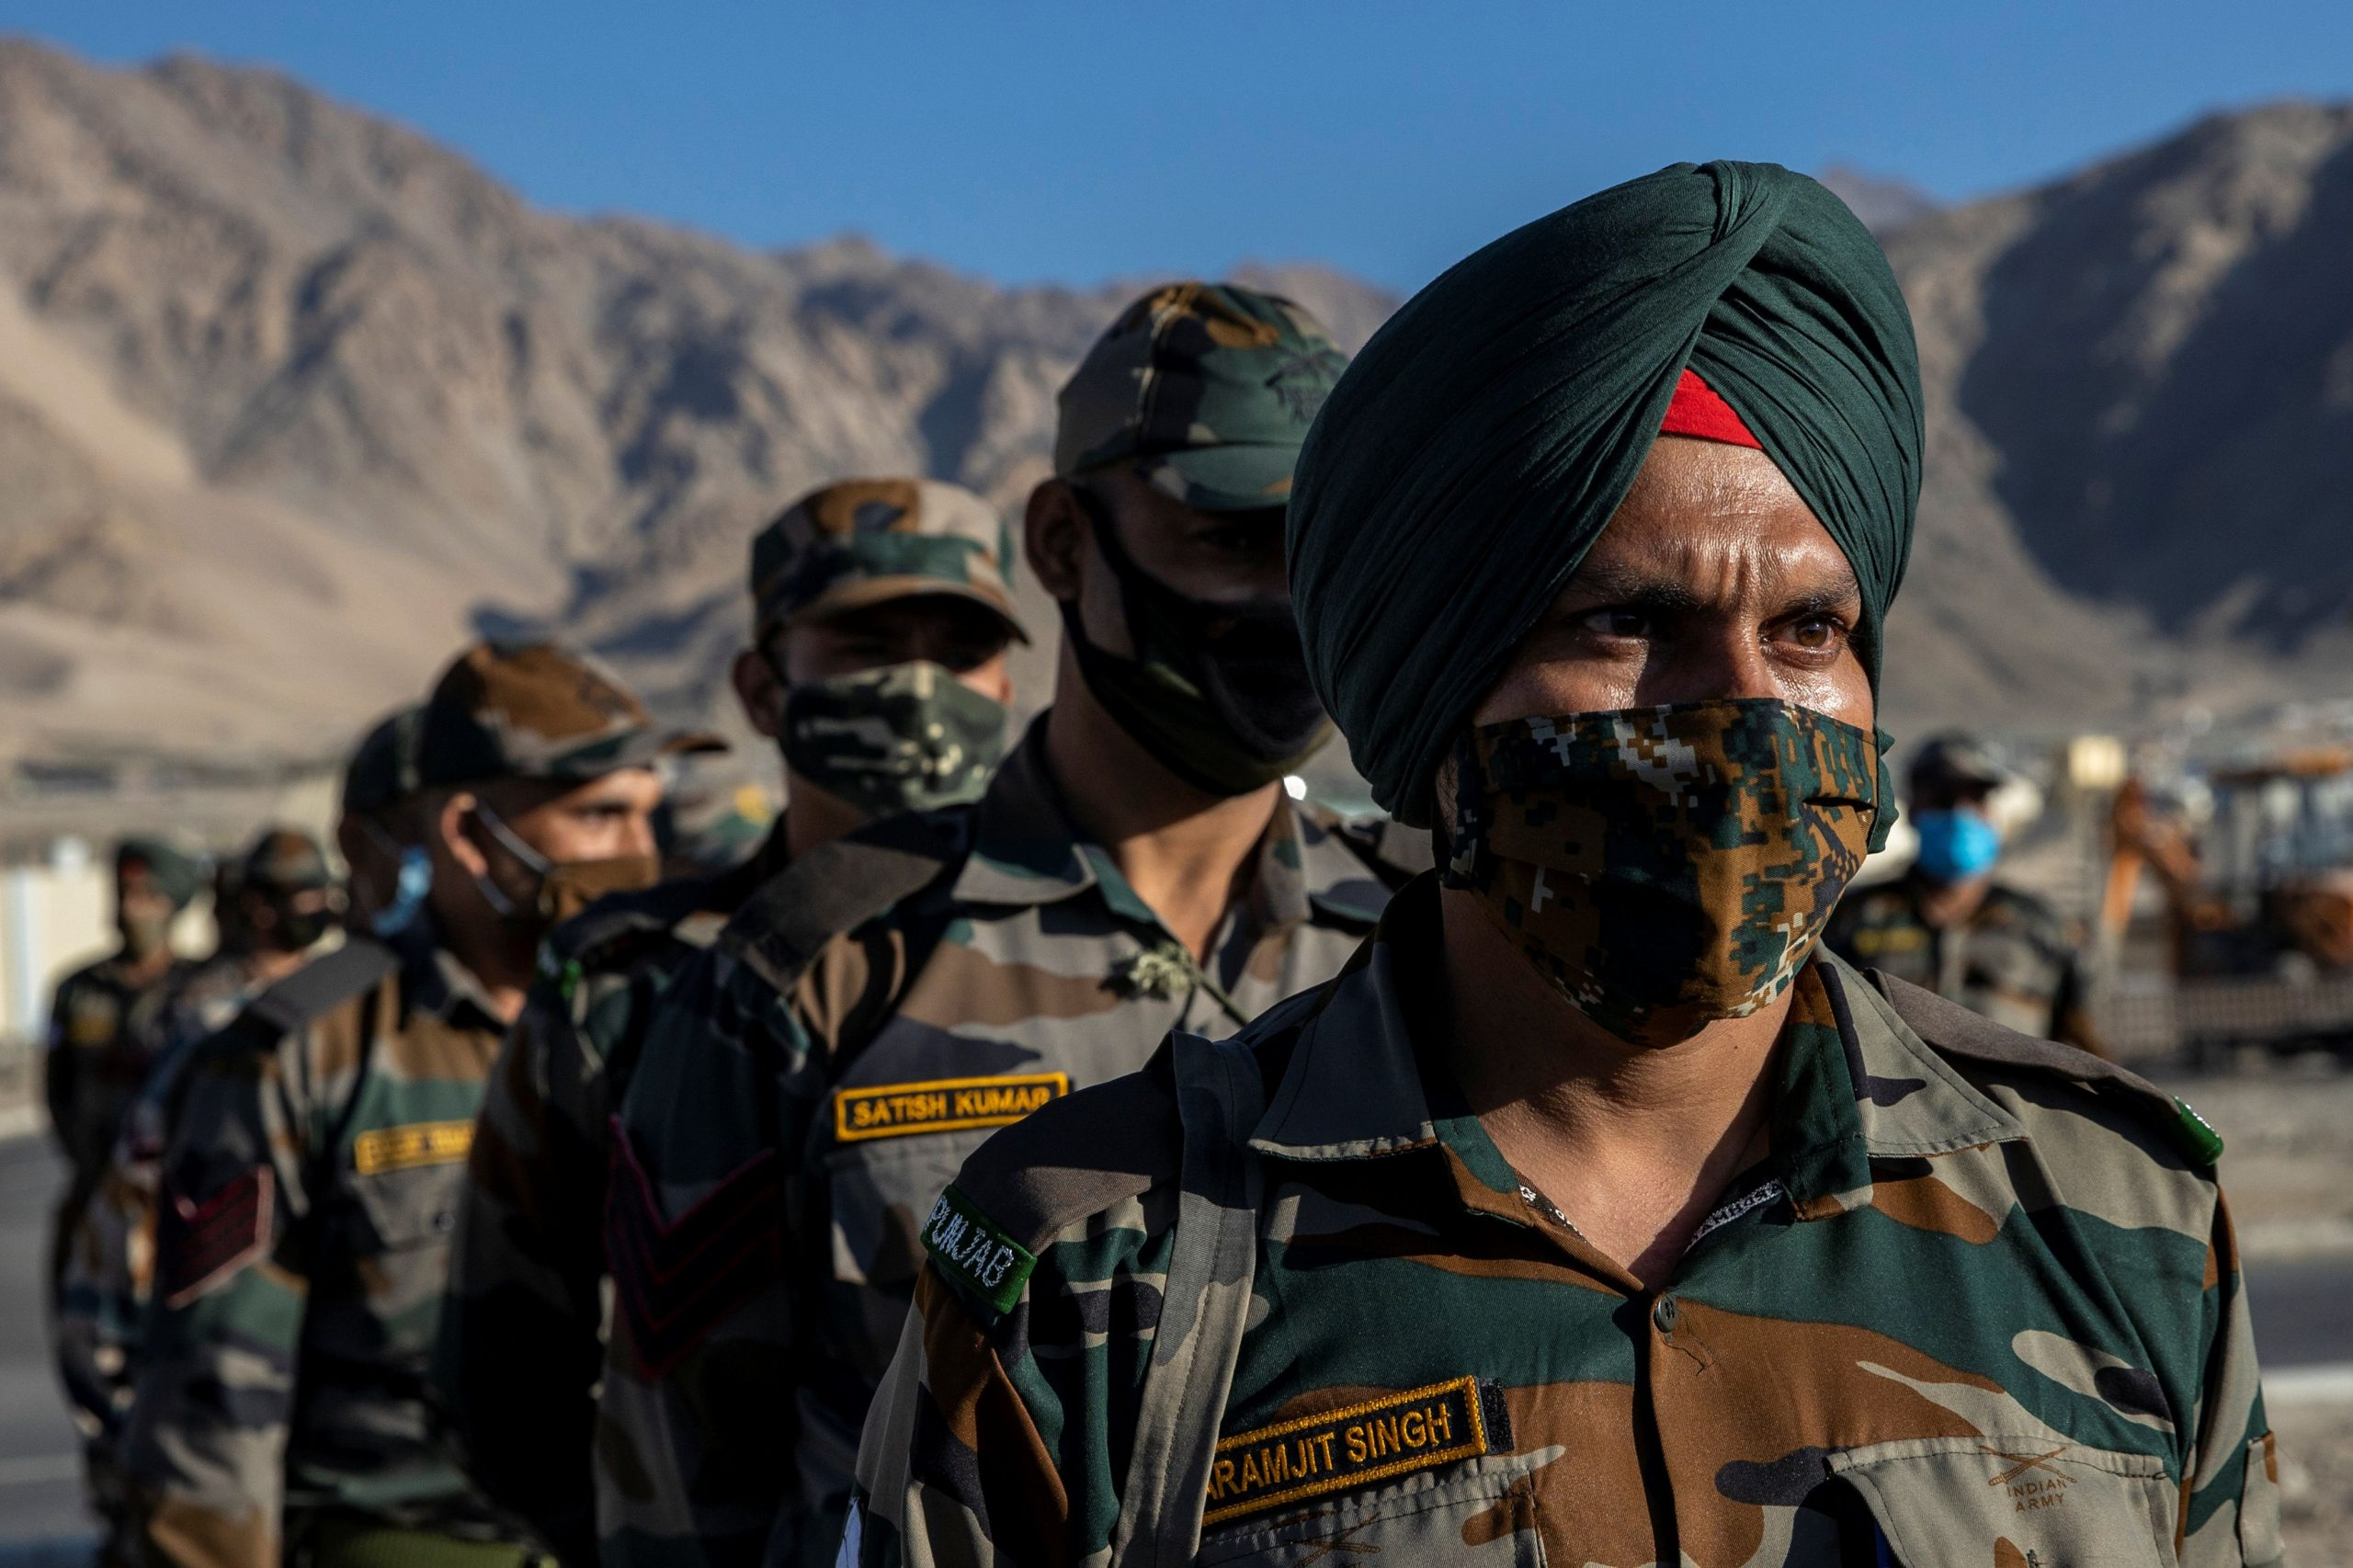 Indian soldiers stand in a formation after disembarking from a military transport plane at a forward airbase in Leh, in the Ladakh region, September 15, 2020. (REUTERS/Danish Siddiqui)